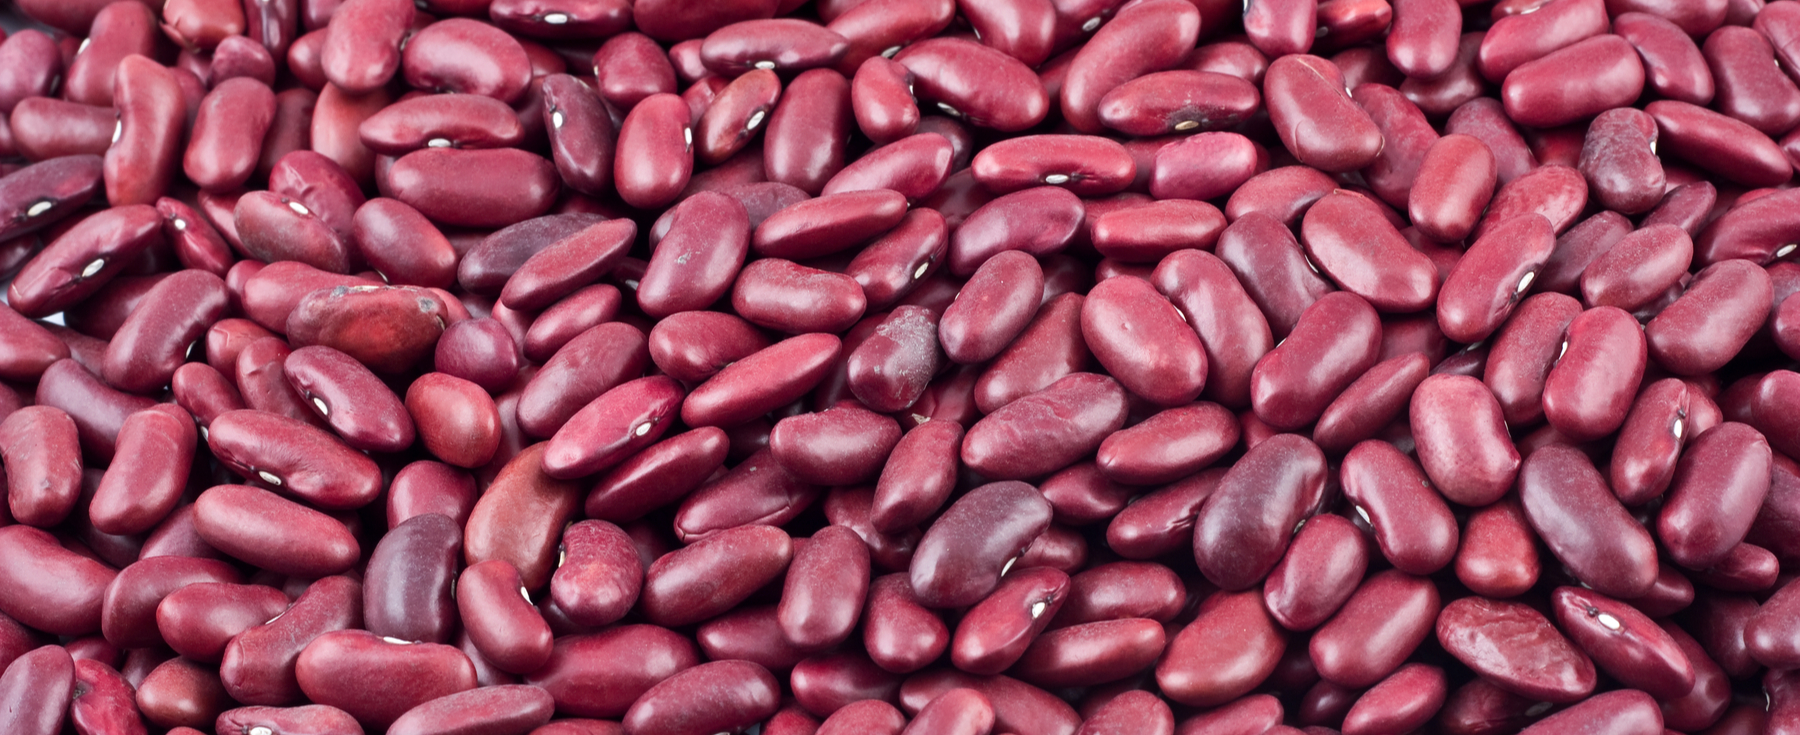 Trading beef for beans is not a solution, veganism is : Ecorazzi